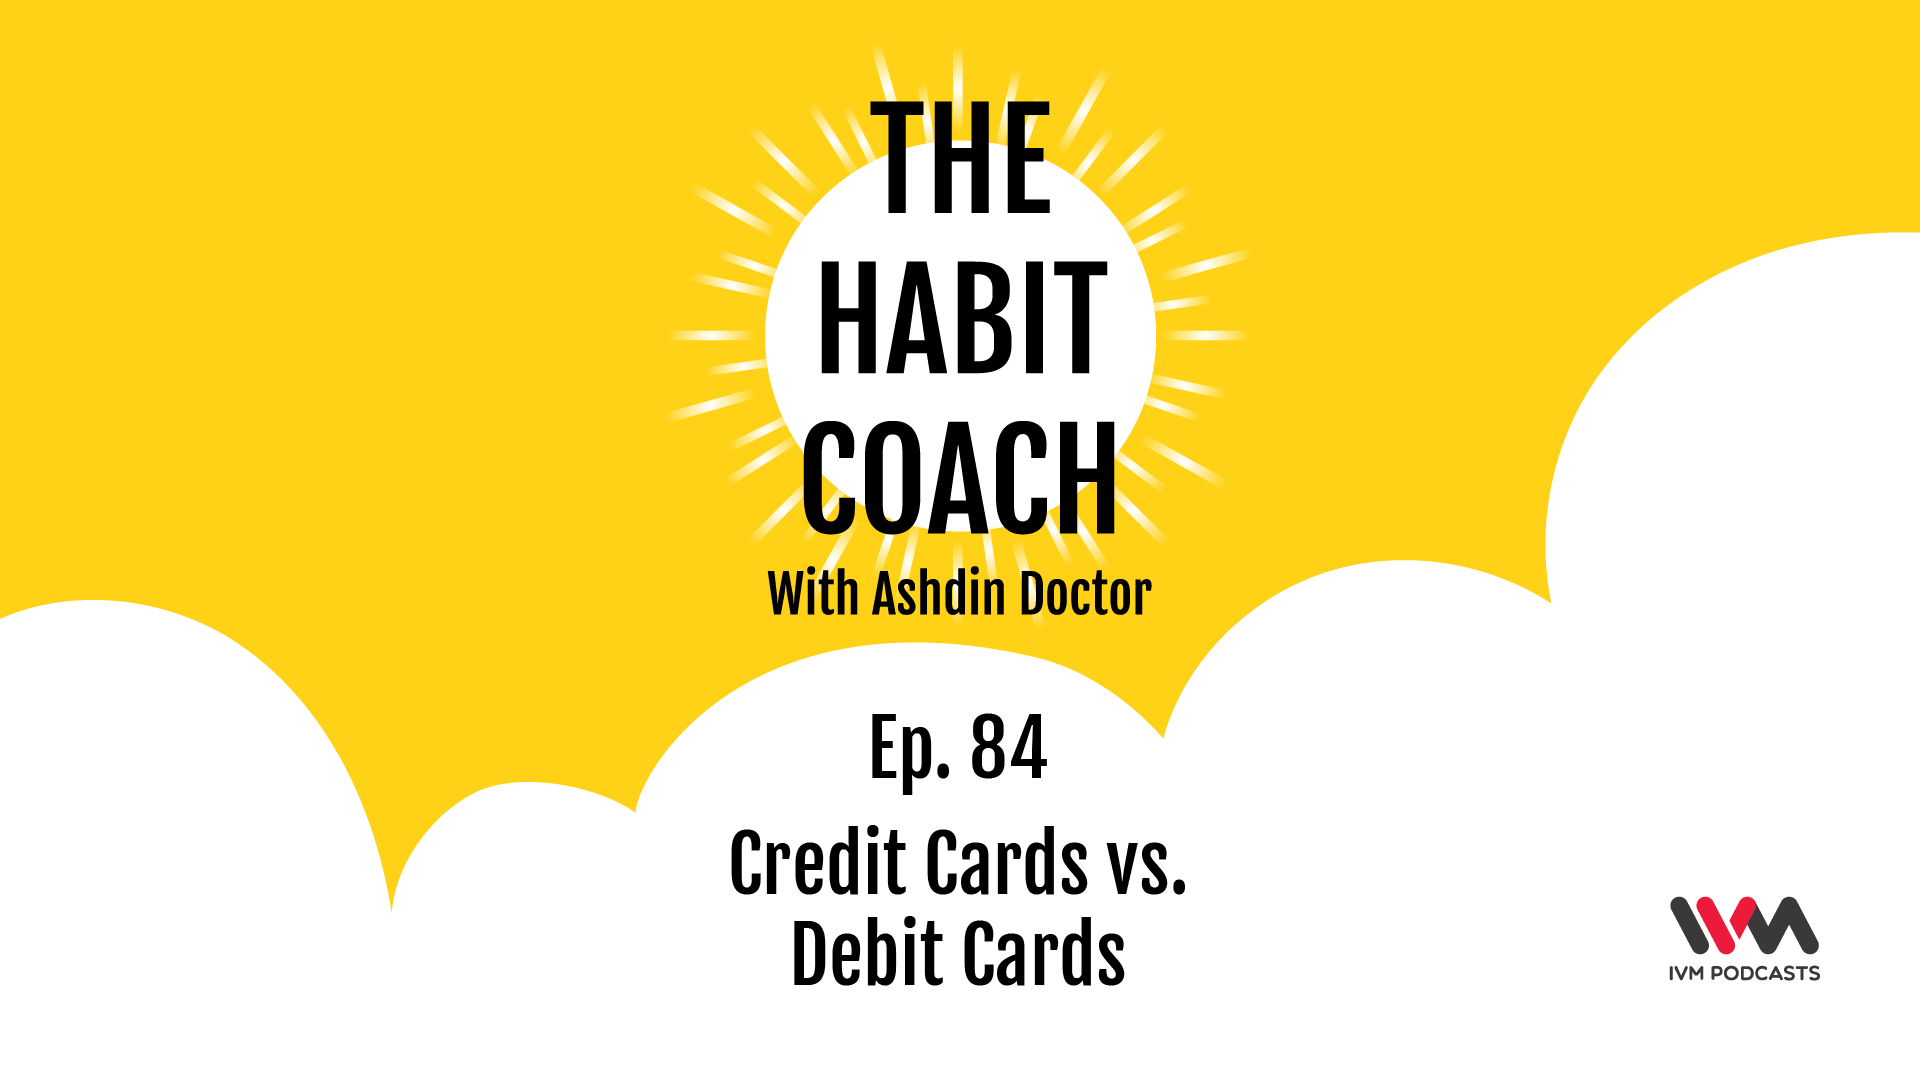 TheHabitCoachEpisode84.png